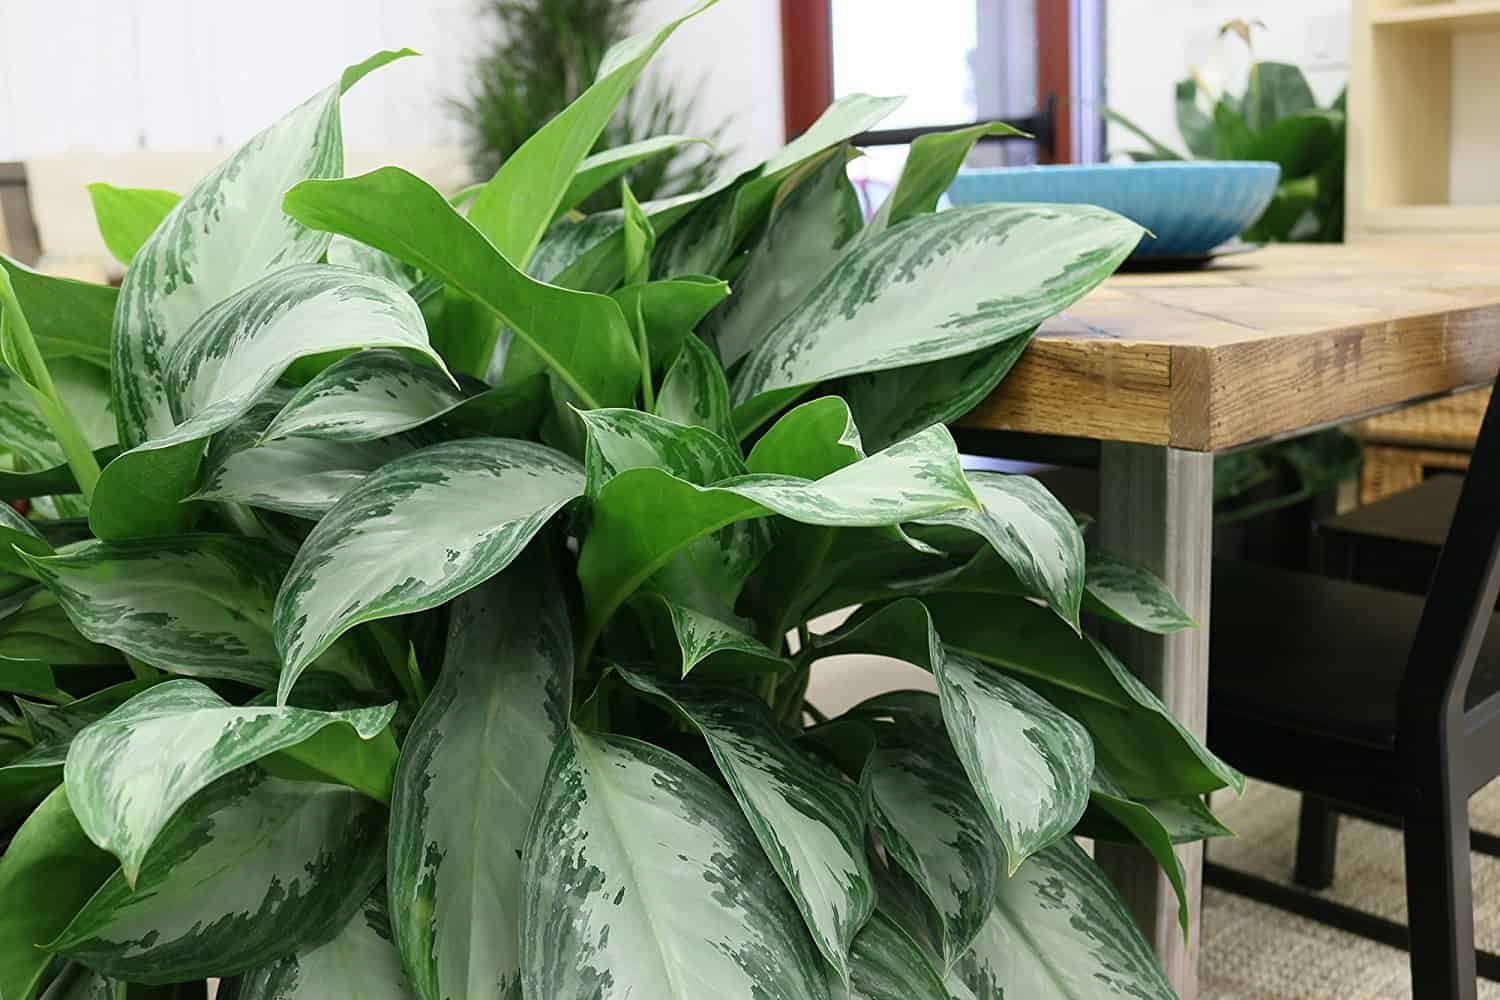 Aglaonema houseplant